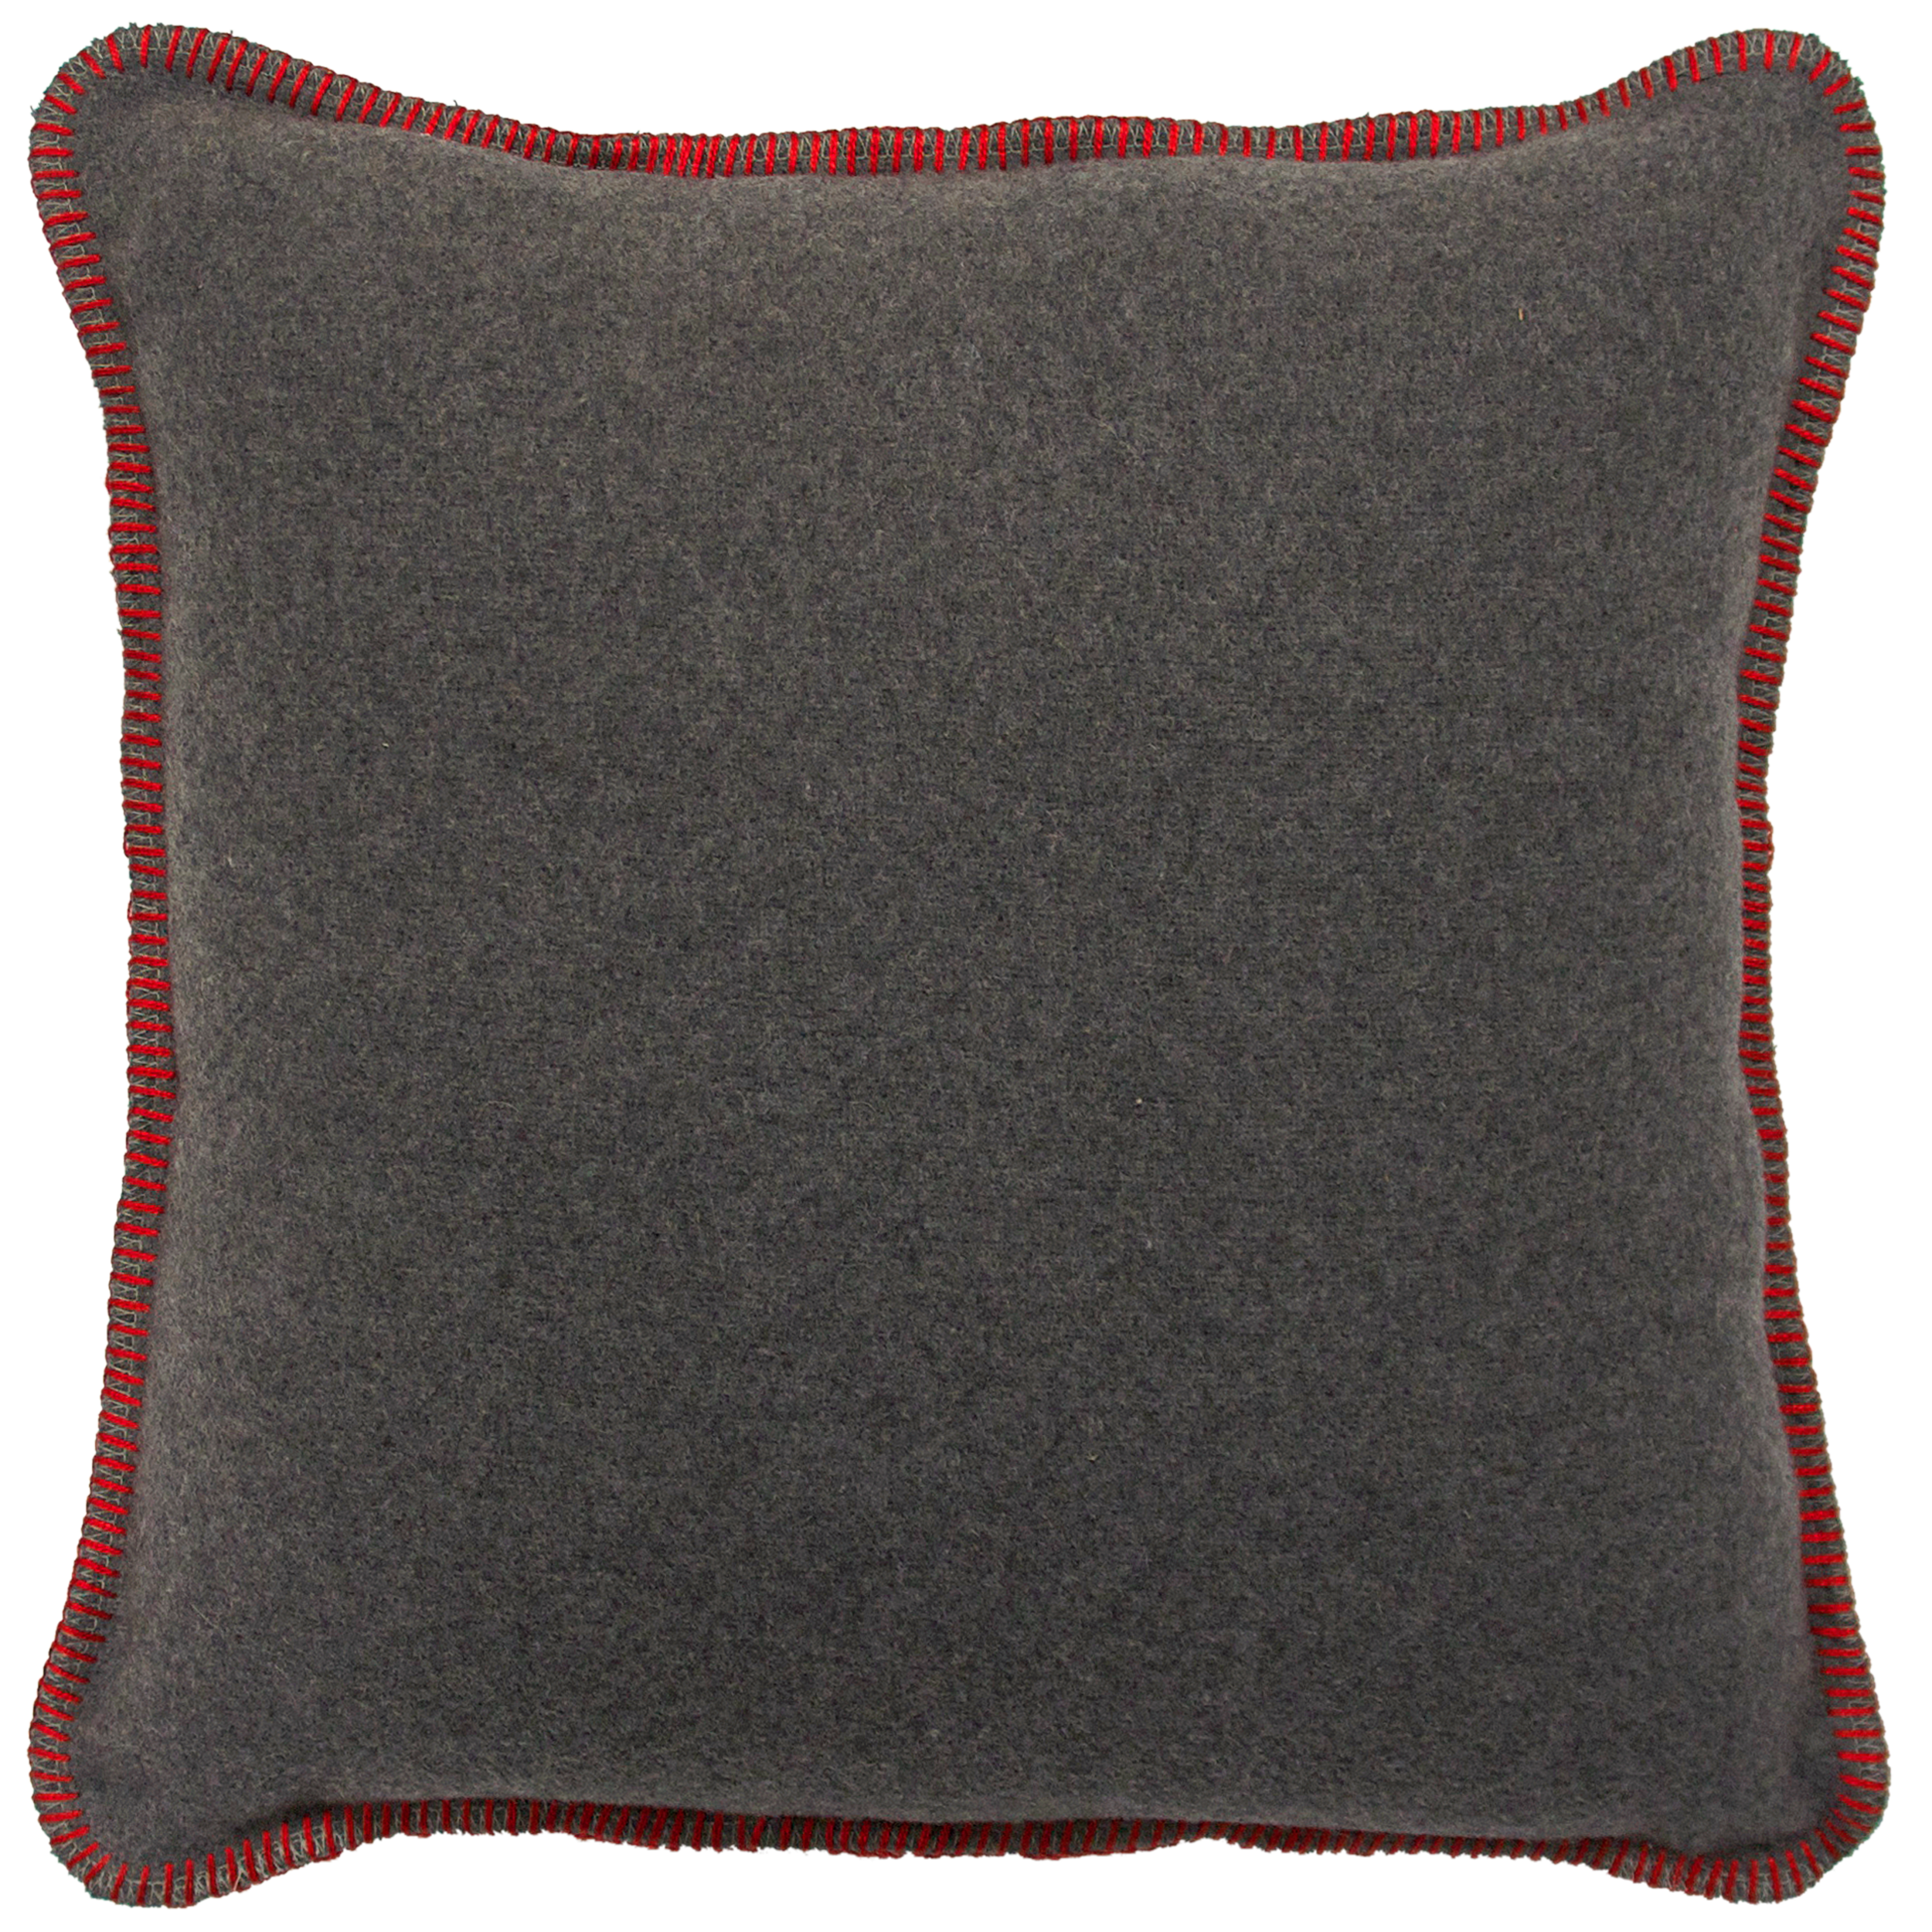 Greystone Red Hot Pillow - 20